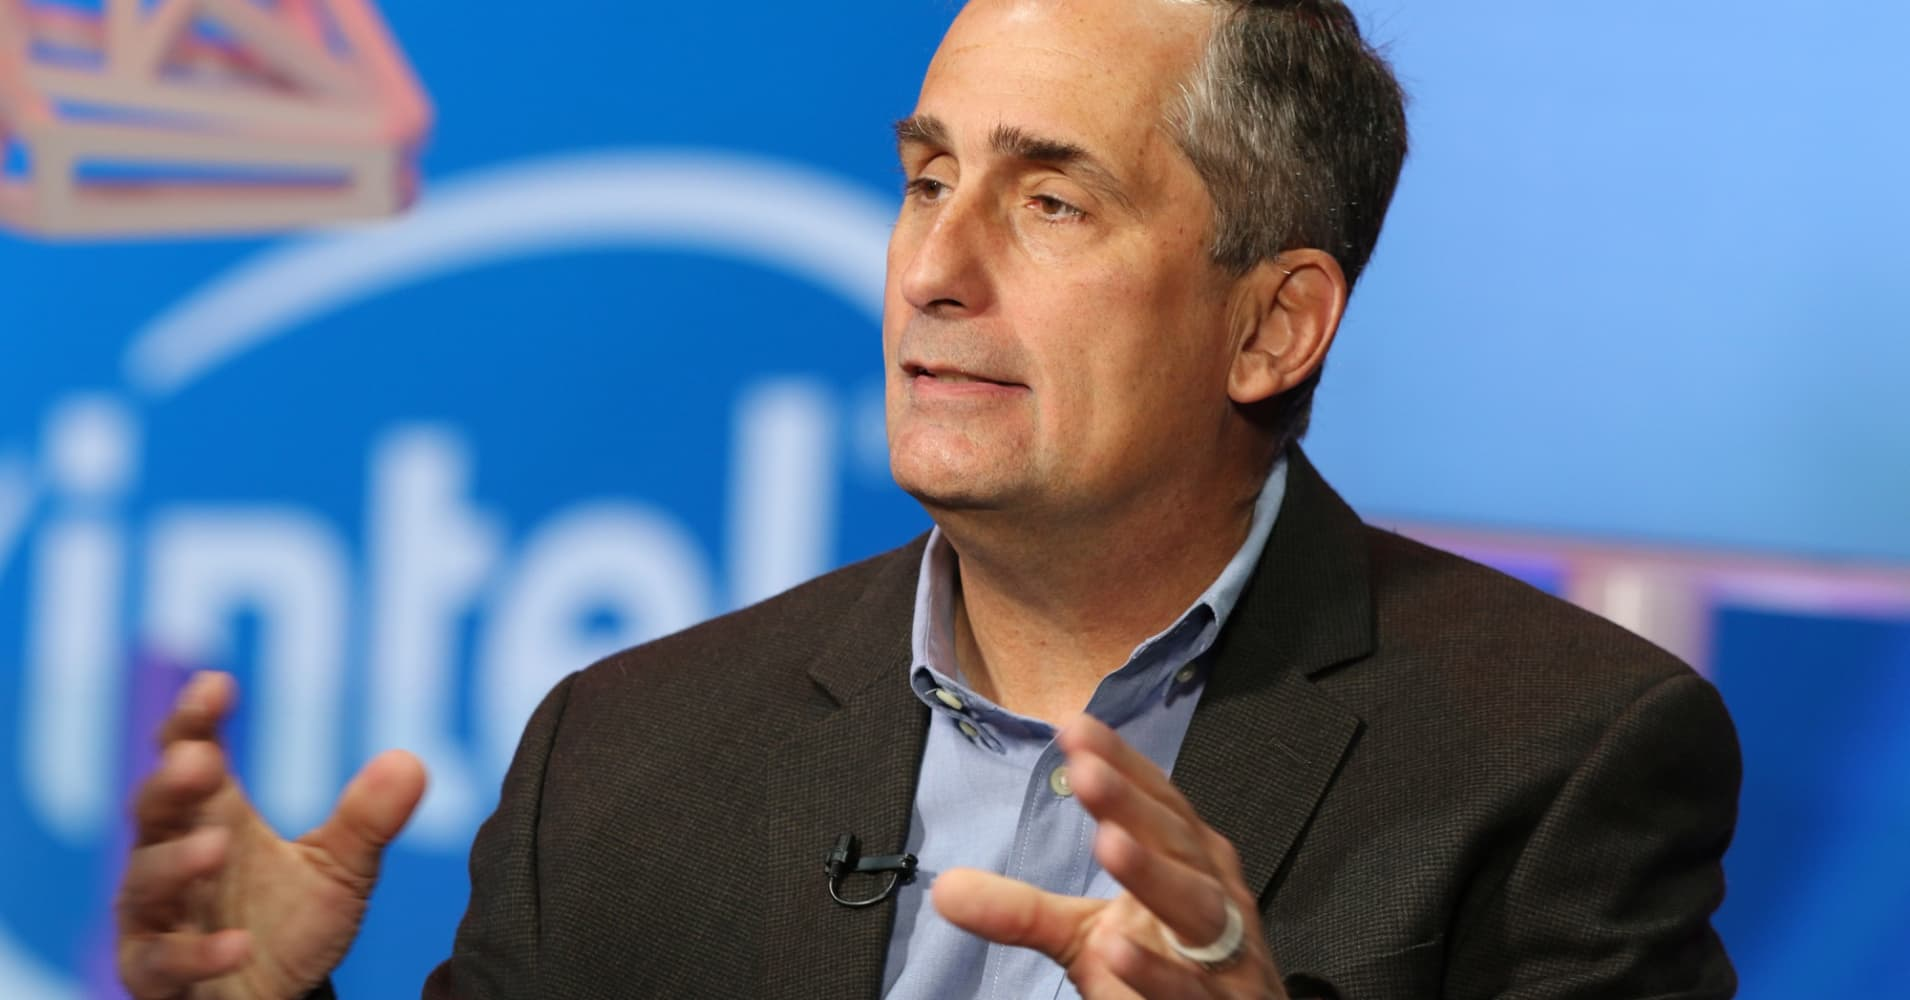 Intel faces stiffer competition from 'resurgent' Nvidia, AMD, BofA says